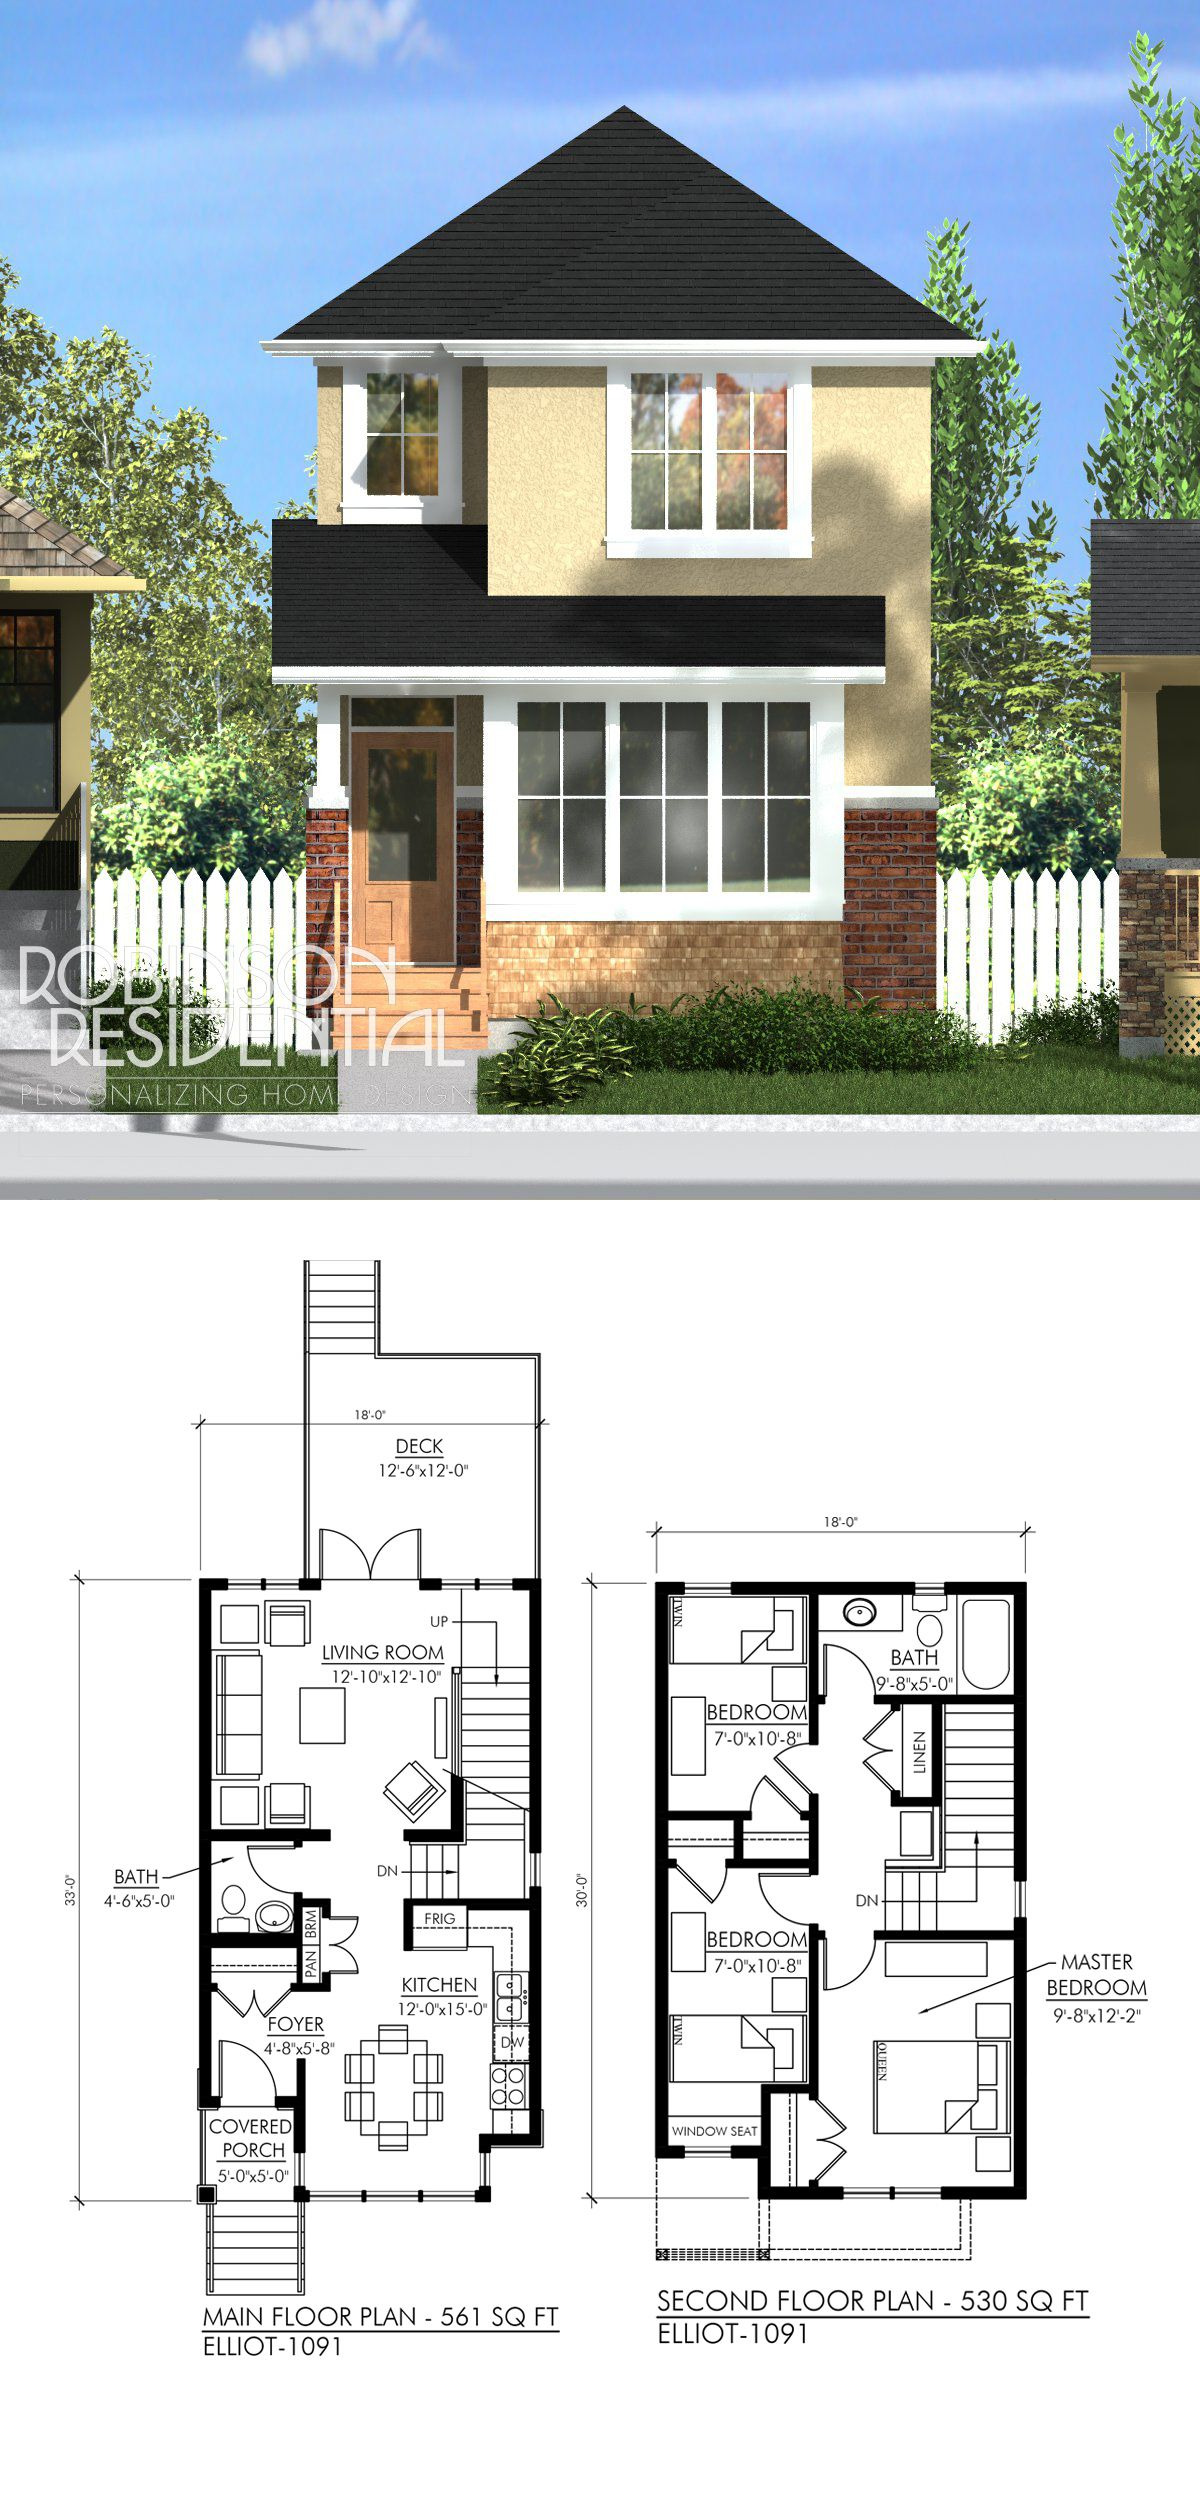 Best Small House Plans Residential Architecture Beautiful Craftsman Elliott 1091